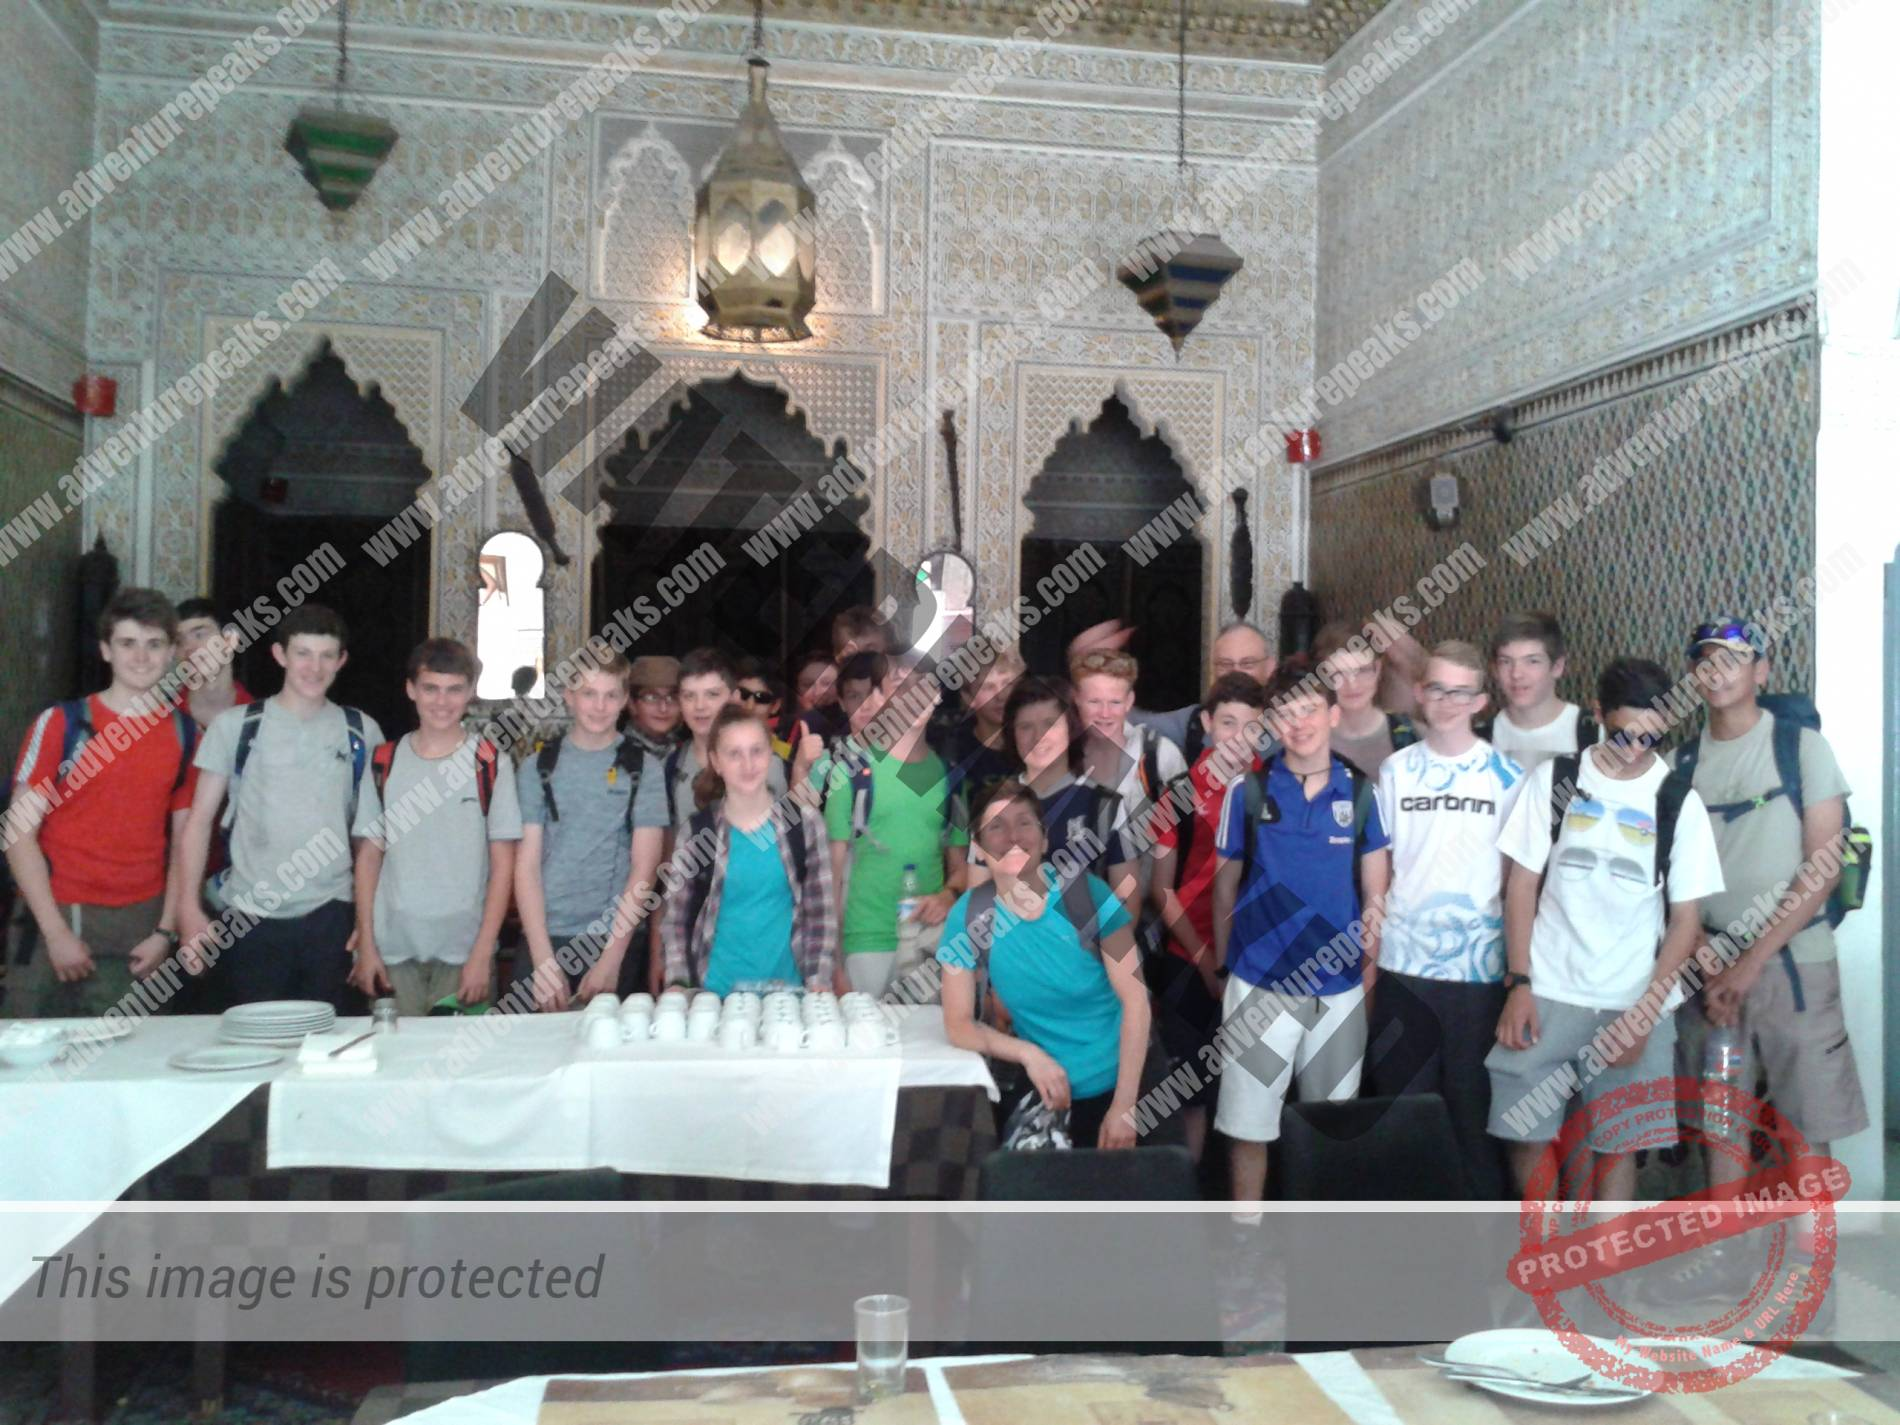 The group in the Hotel Foucauld